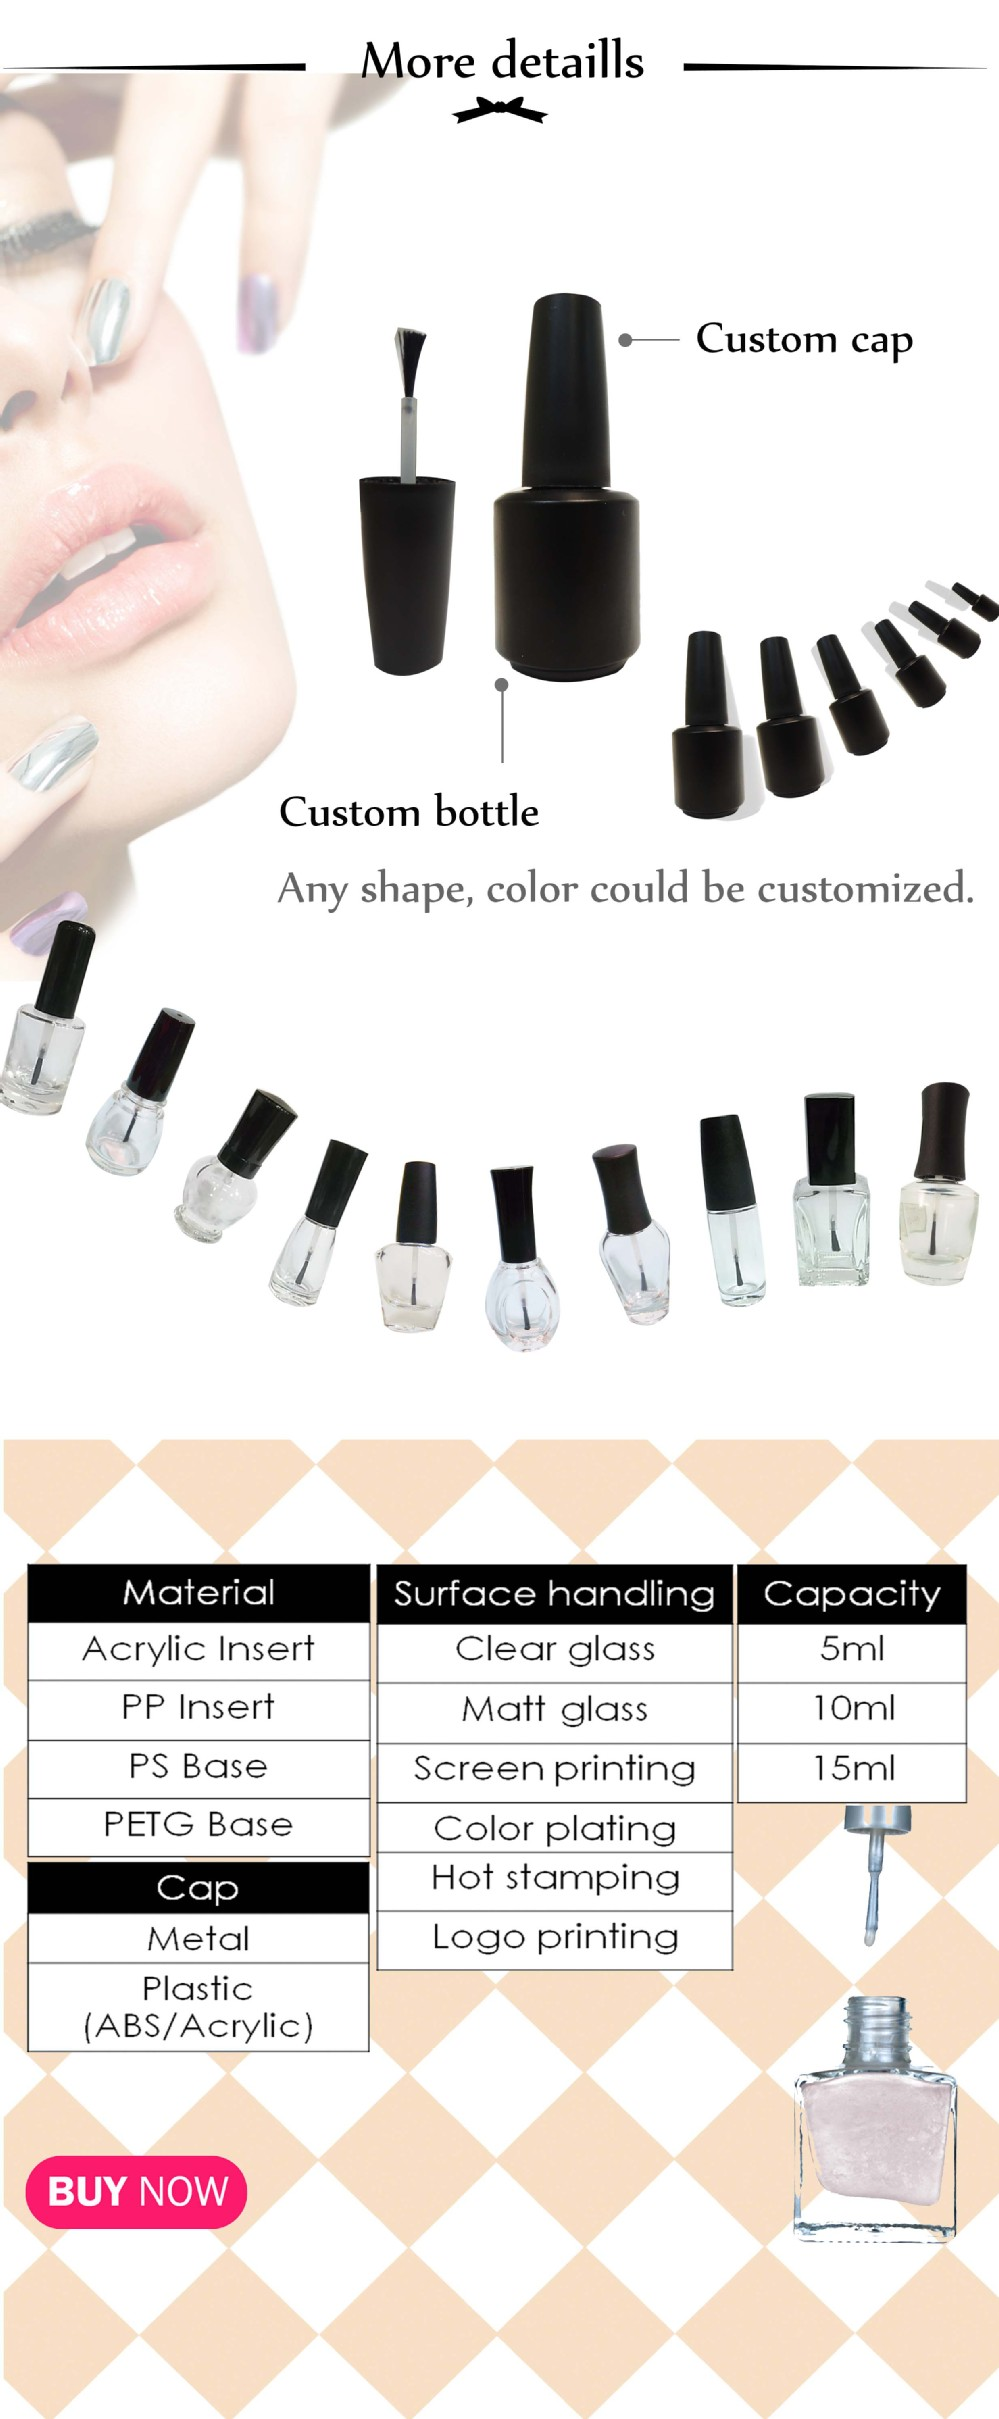 more details-nail-new.jpg